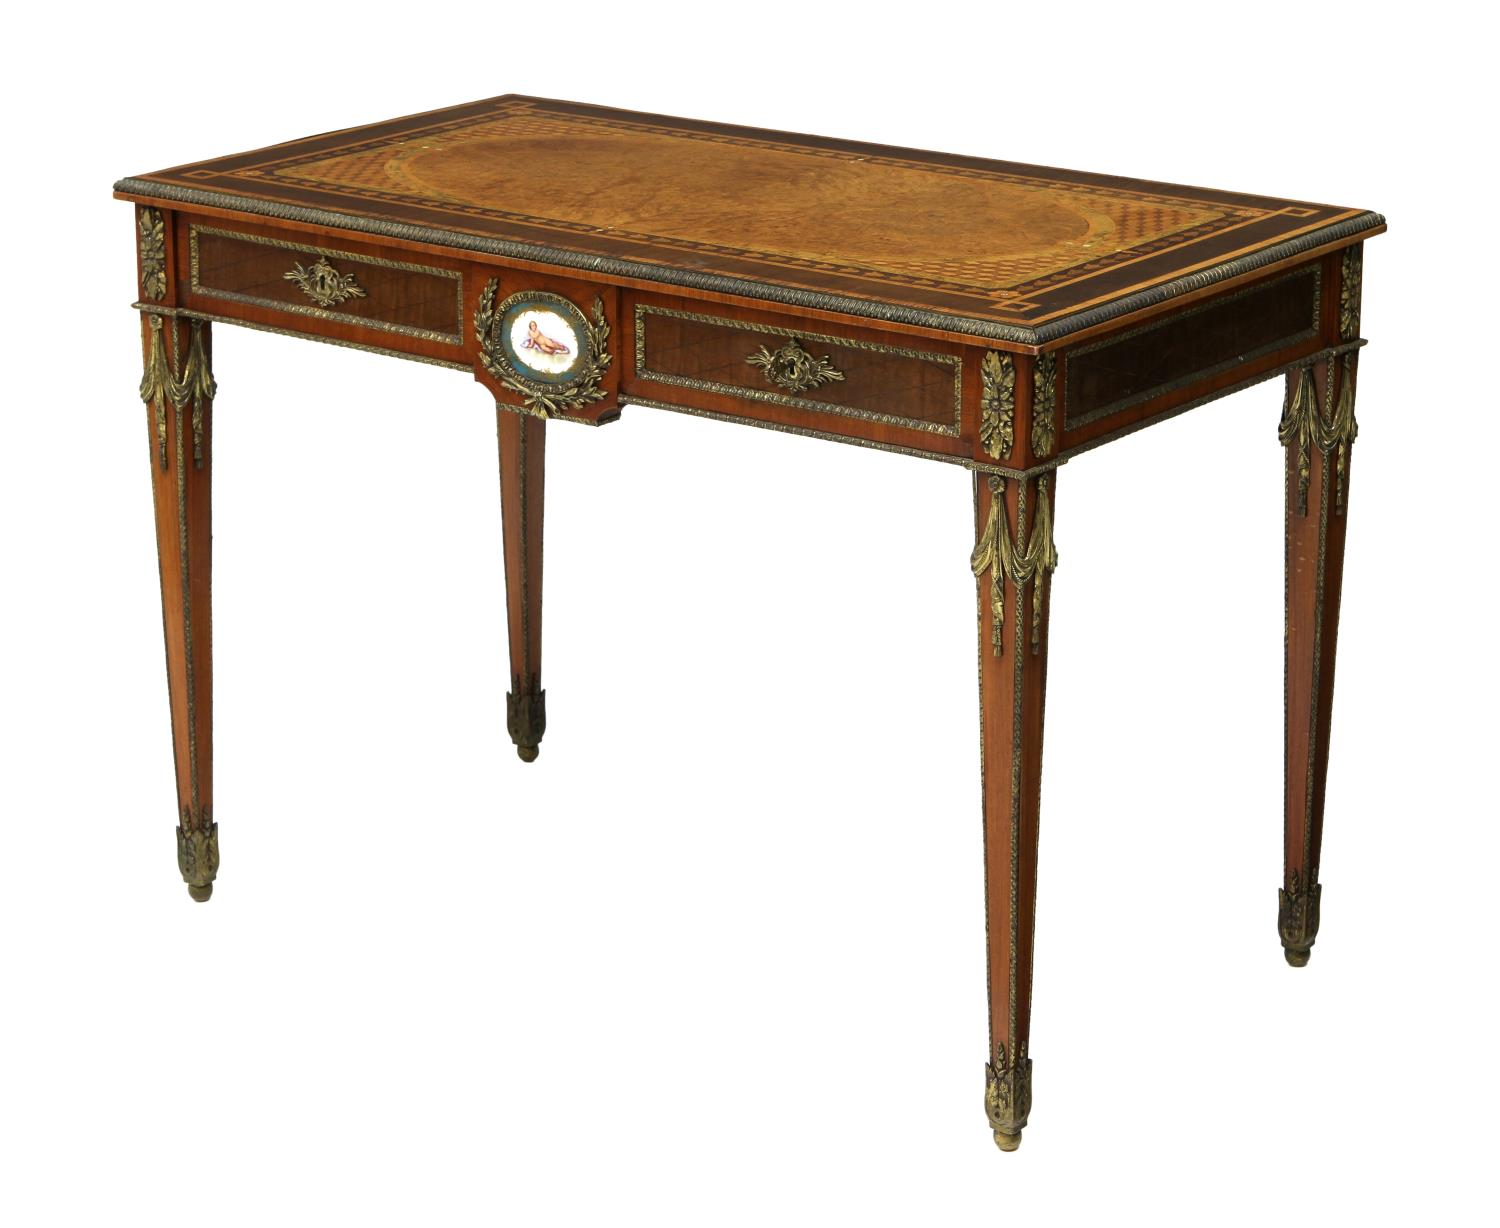 Table Basse Salon Style Louis Xvi – Phaichicom -> Able Basse Louis Xvi